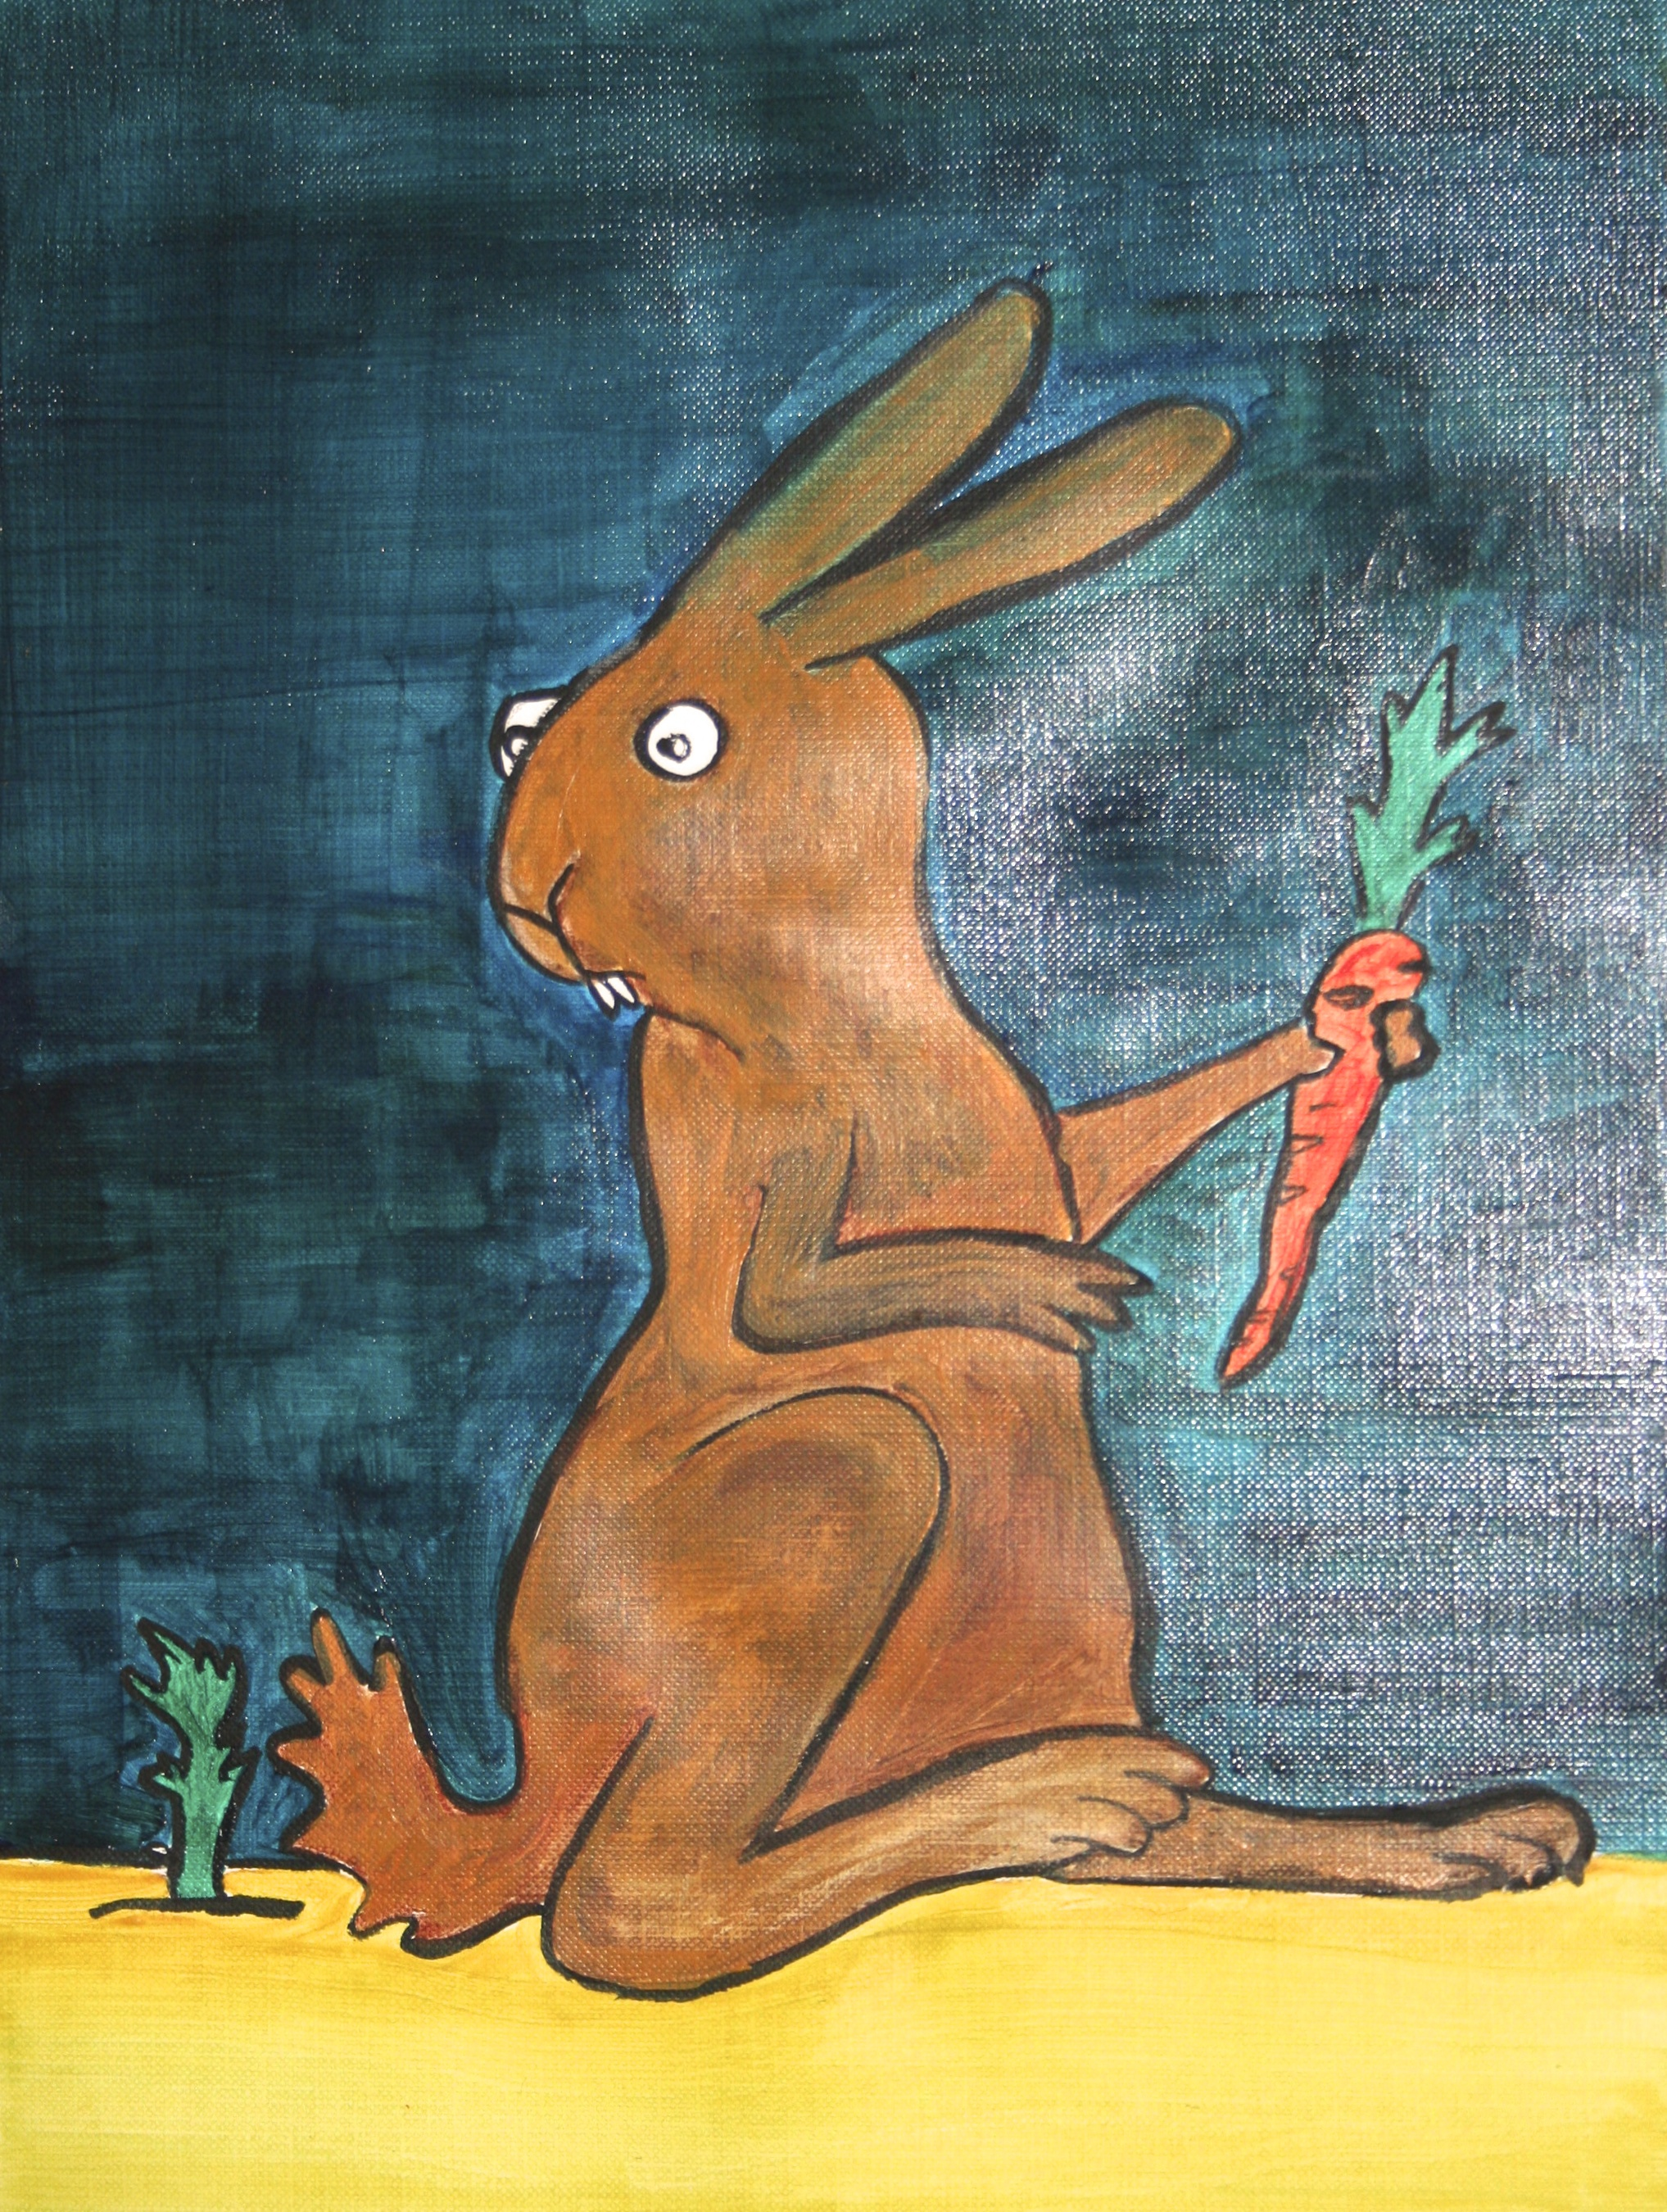 rabbit carrot.jpg